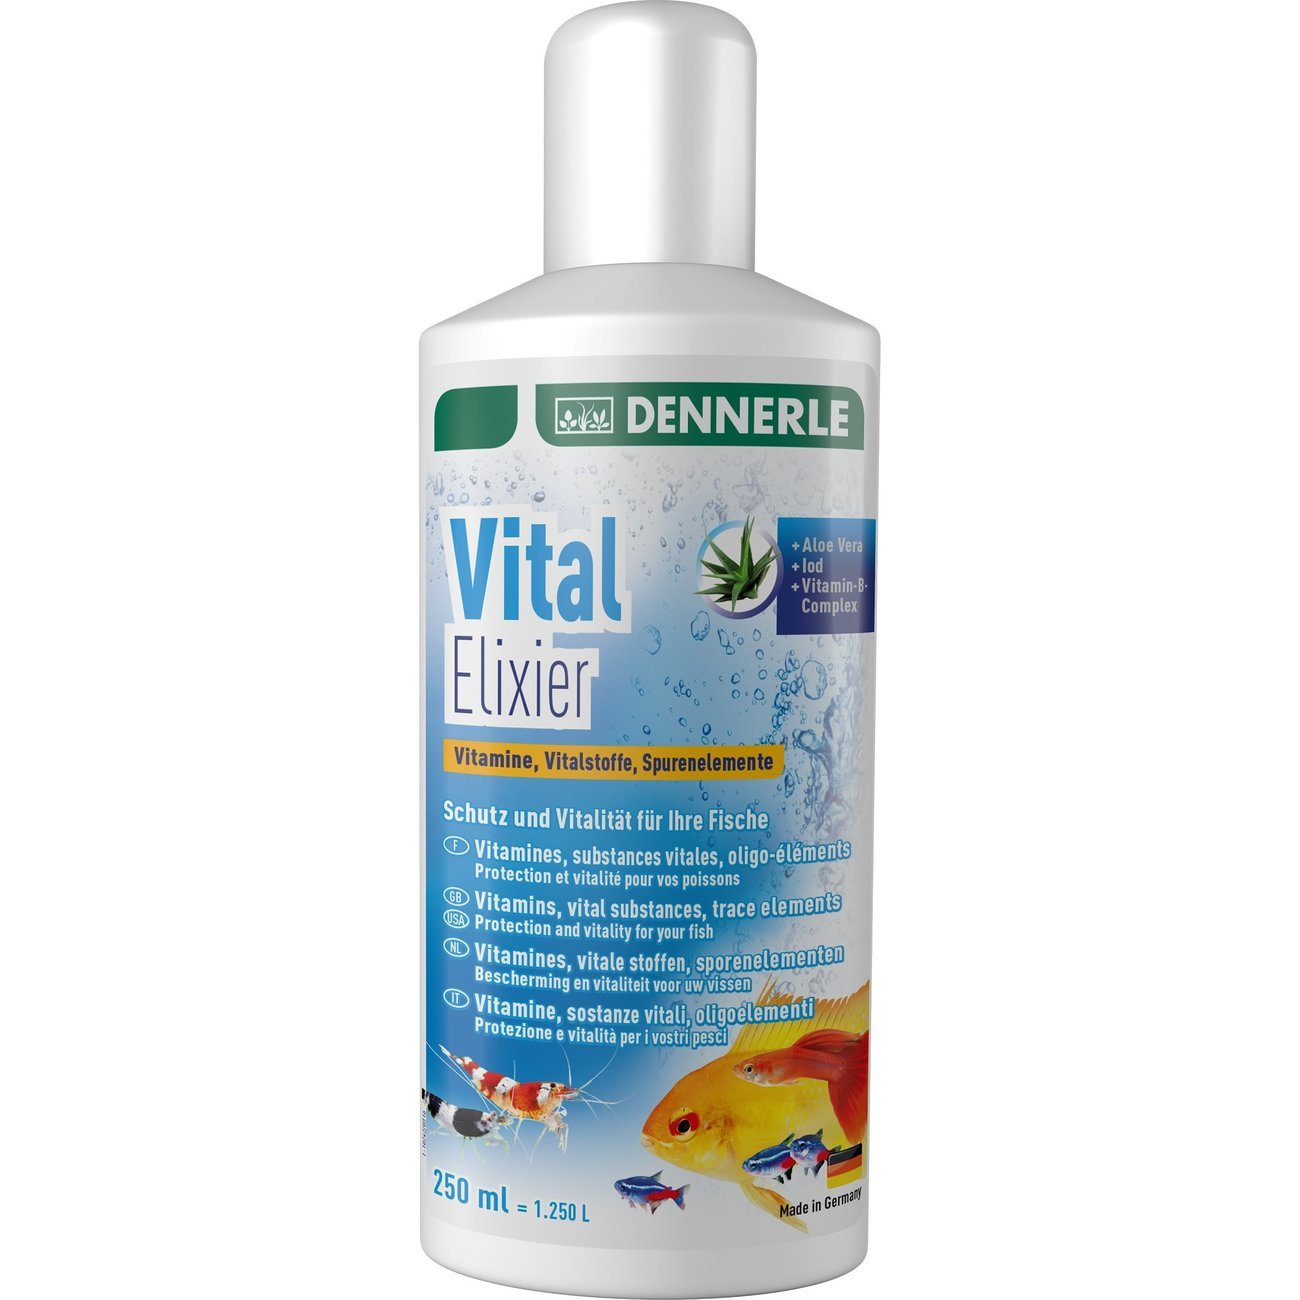 Dennerle Vital Elixier Preview Image